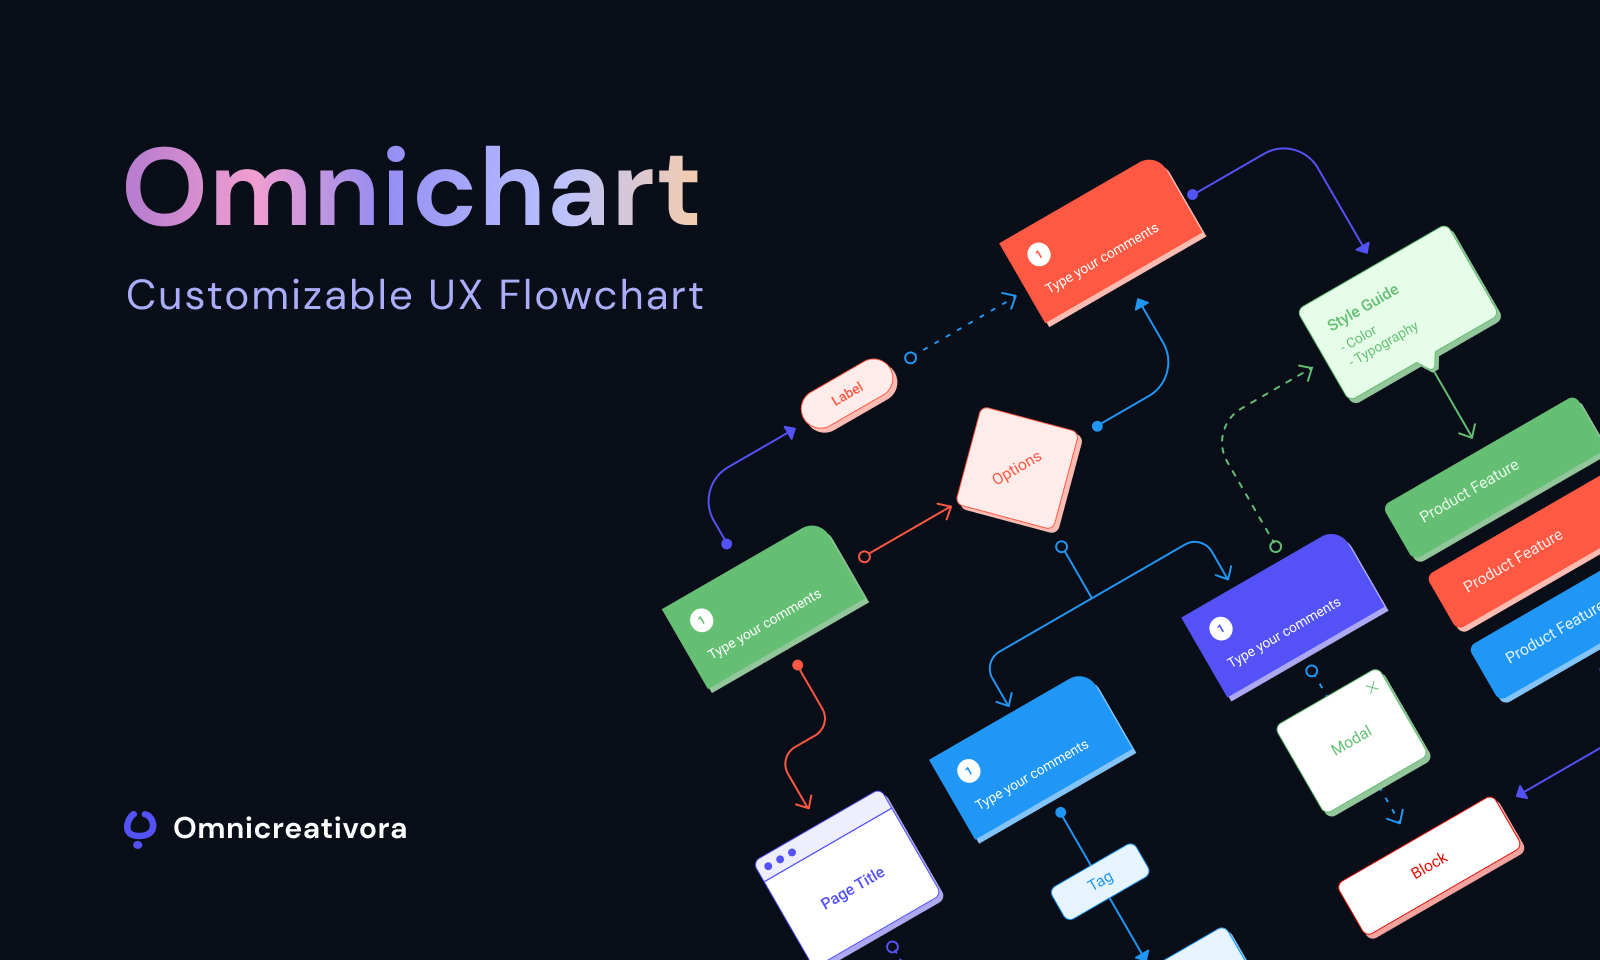 Omnichart - Free UX Flow Chart for Figma - We make a customizabe UX Flow Chart. Every part separated as component, you can edit, change,  or use for your purposes. Feel free to use!